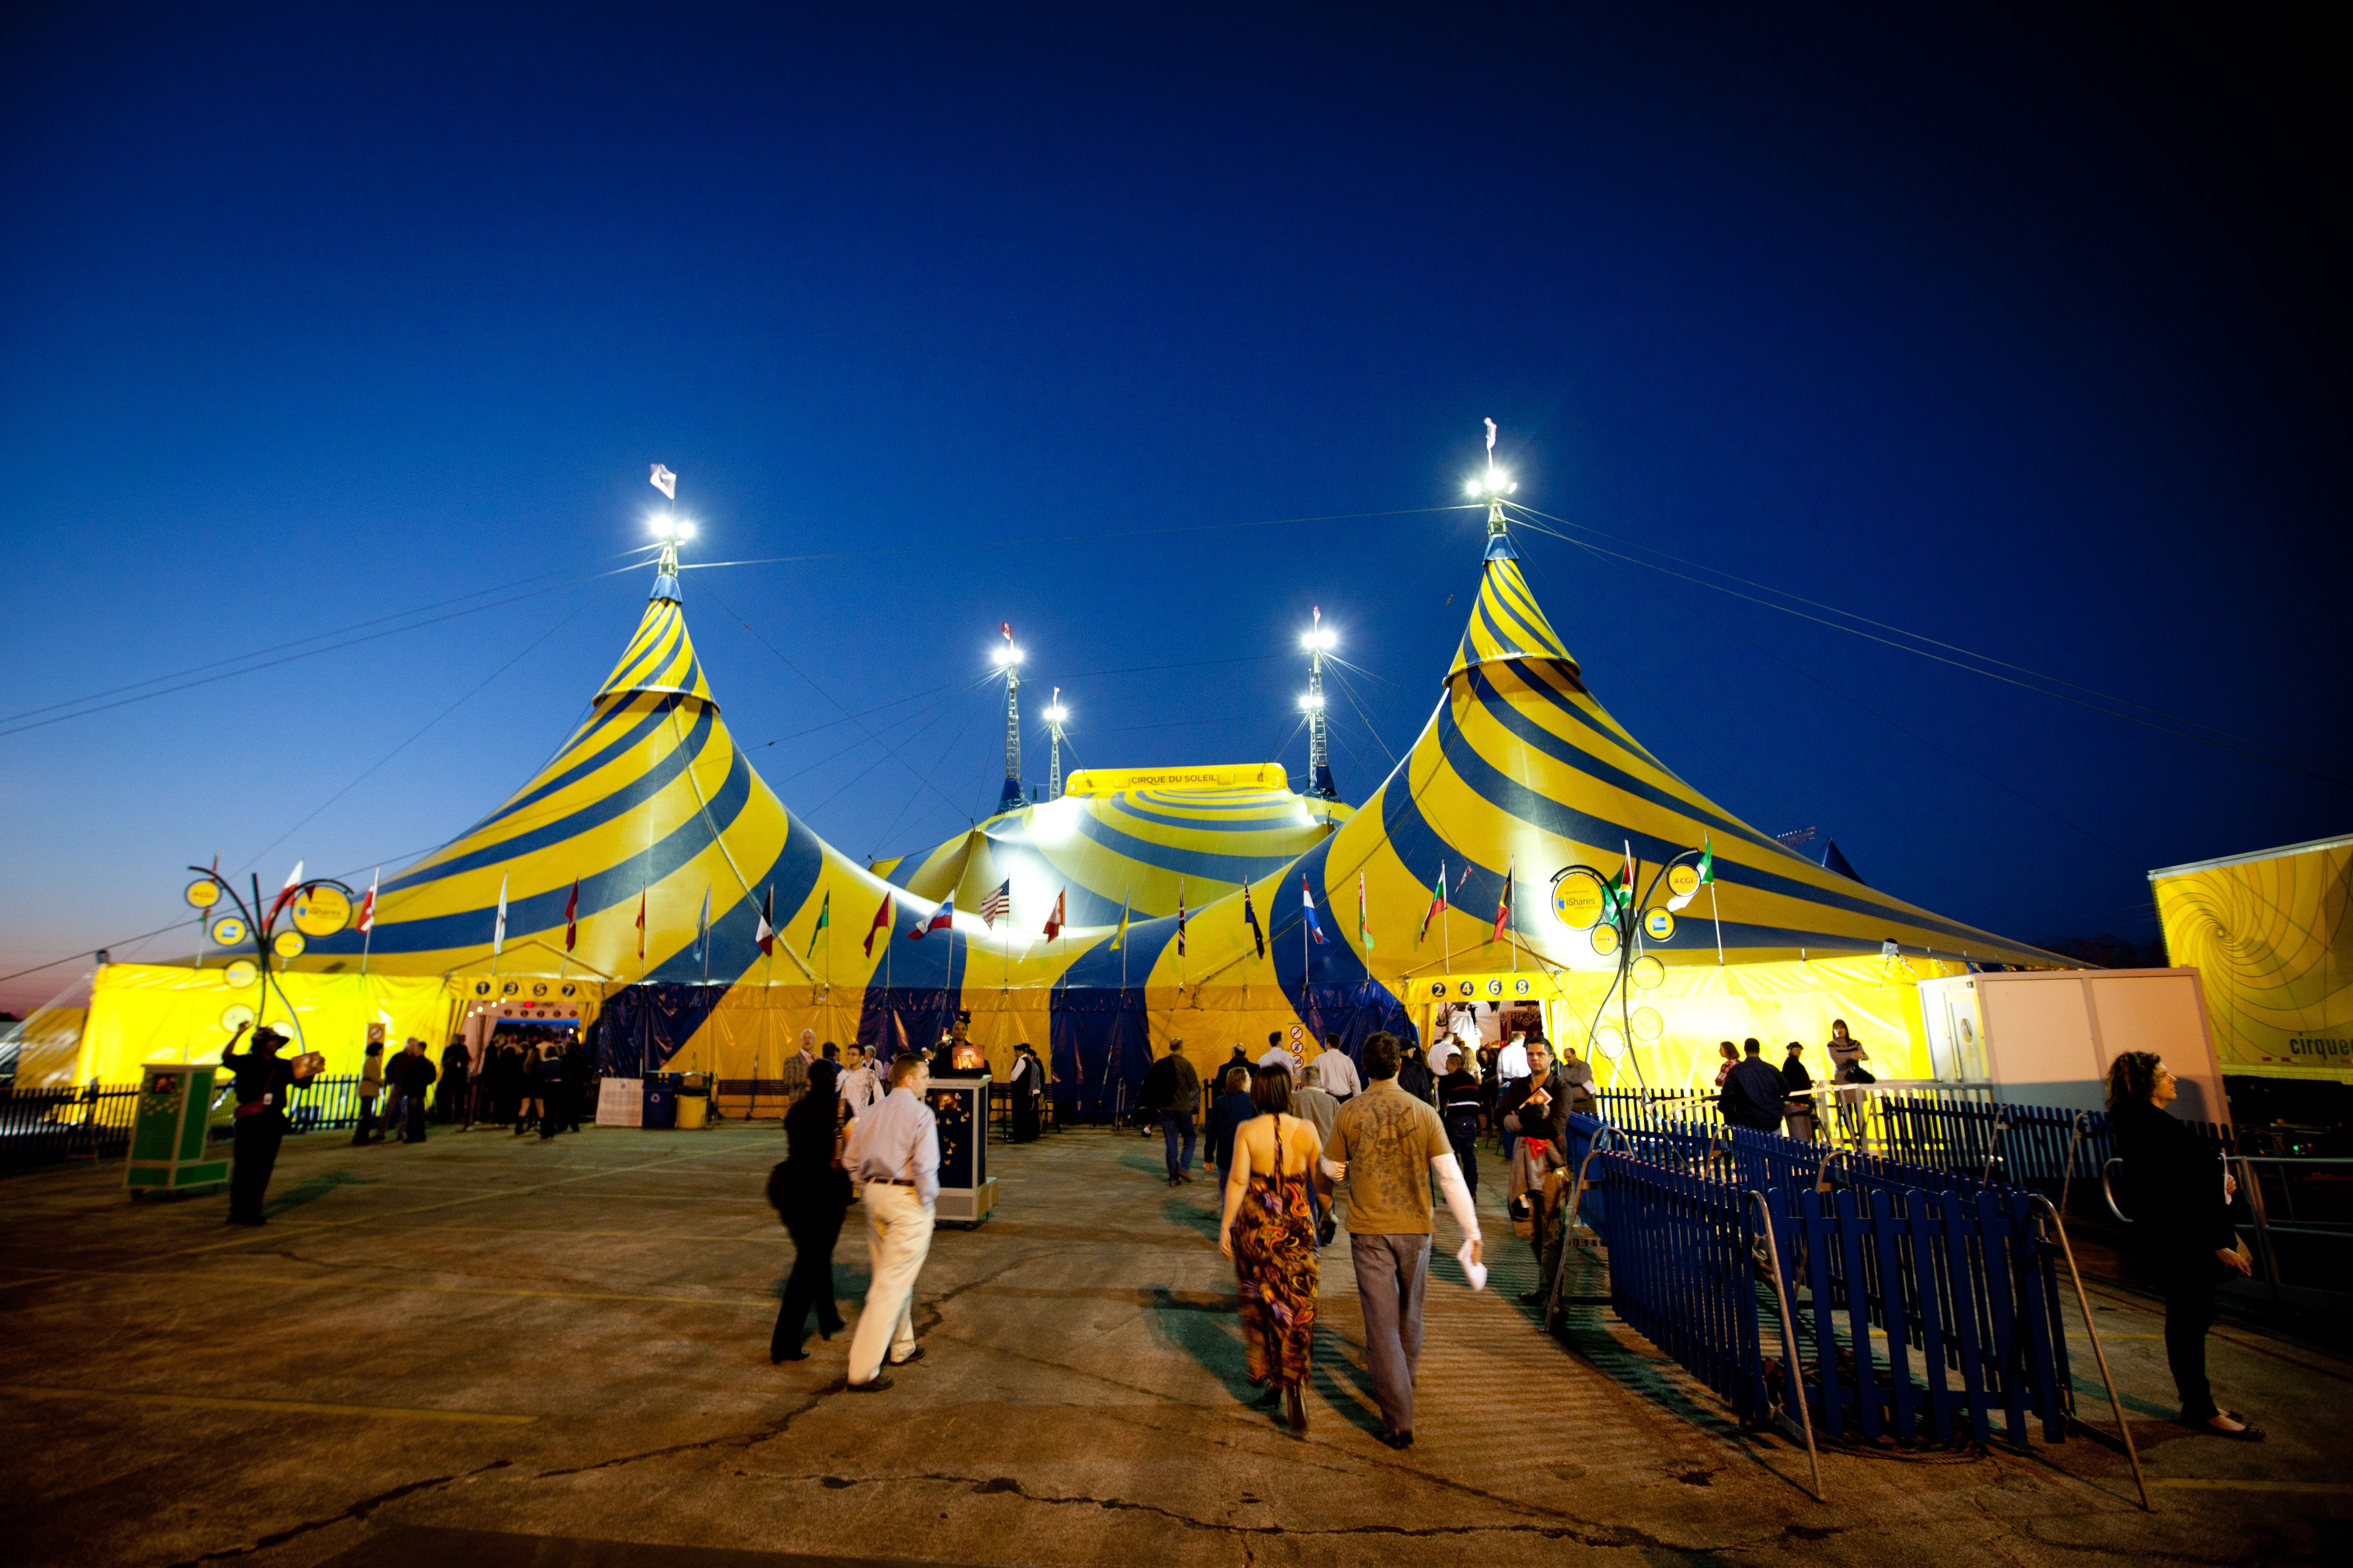 A few nice cirque de soleil images I found Circus Tent at OVO! by Cirque de Soleil Image by eschipul OVO production by Cirque de Soleil which runs March 10 ... & Cirque Du Soleil is one of the first (and continuing) large ...